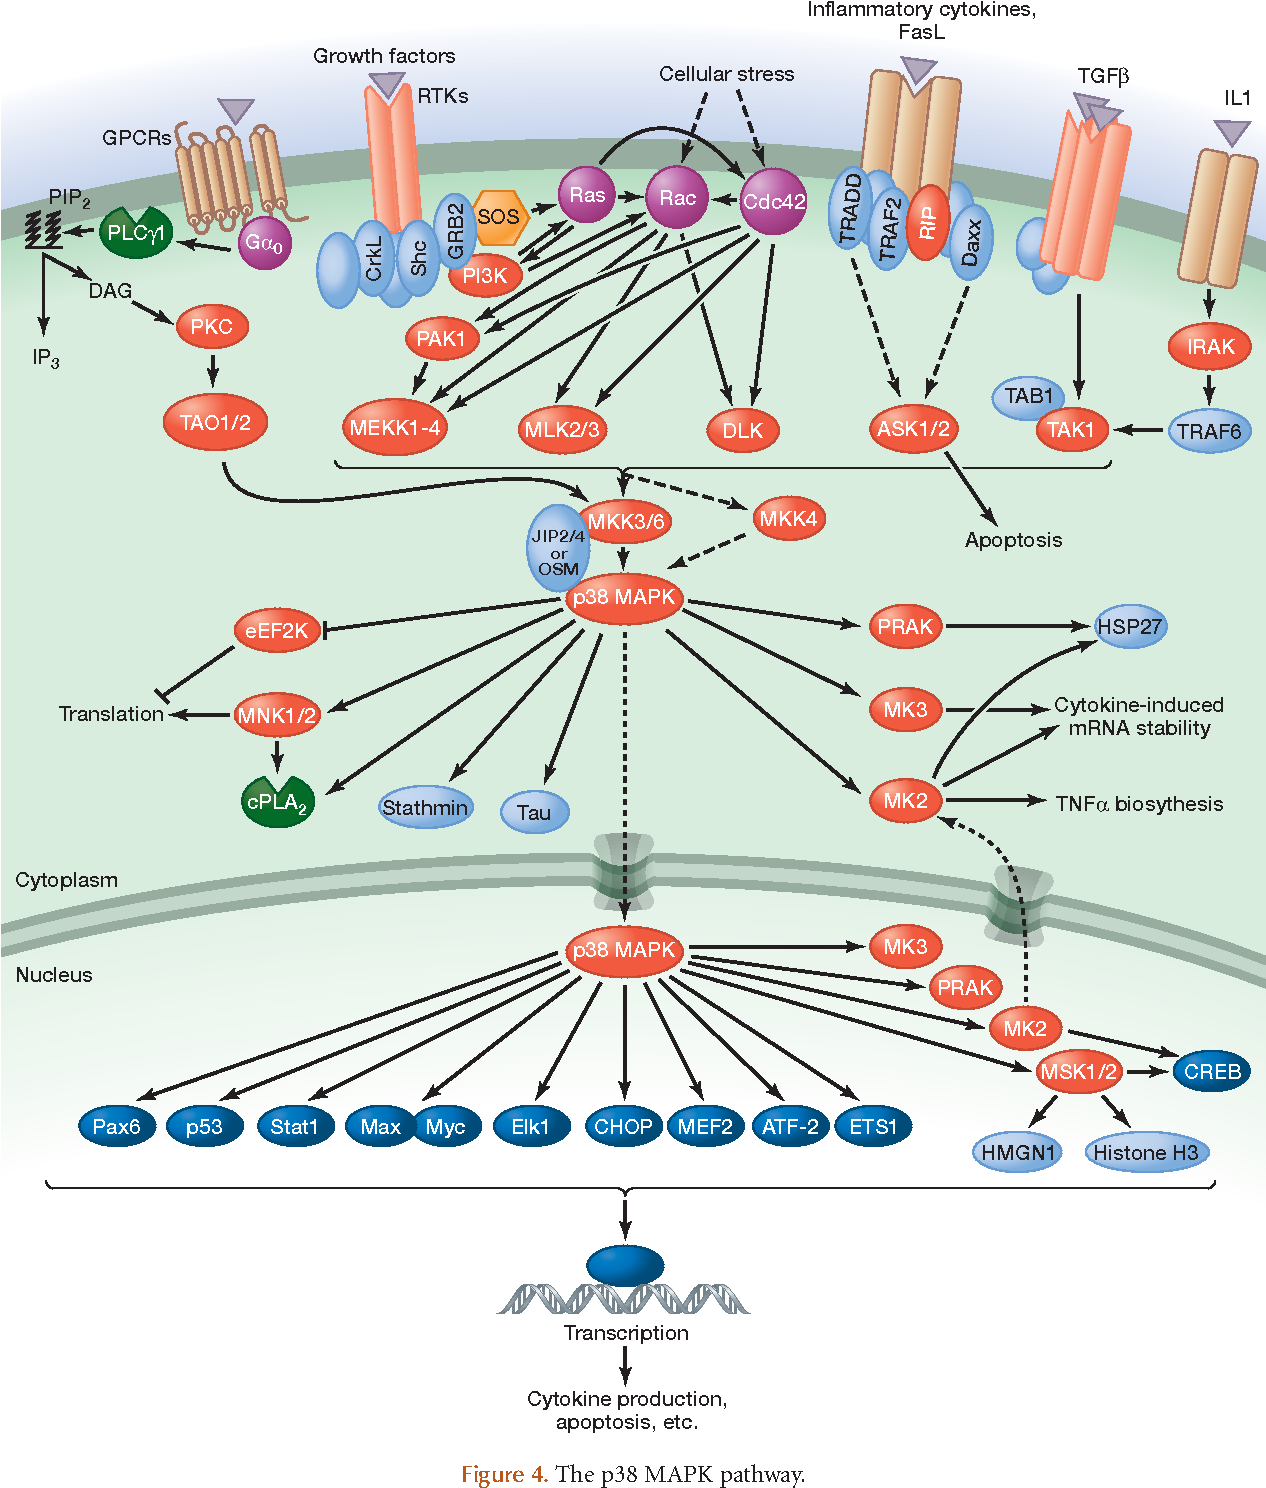 Figure 4 from MAP kinase pathways. - Semantic Scholar on insulin pathway, cyclin-dependent kinase, il-6 signaling pathway, thyroid pathway, jak-stat signaling pathway, cell signaling, adenylate cyclase pathway, pi3k/akt/mtor pathway, phosphatidylinositol 3-kinase pathway, receptor tyrosine kinase, wnt signaling pathway, jak 1 2 3 signaling pathway, pi 3-kinase pathway, protein kinase c, mitogen-activated protein kinase, signal transduction, tyrosine kinase, tgf beta signaling pathway,